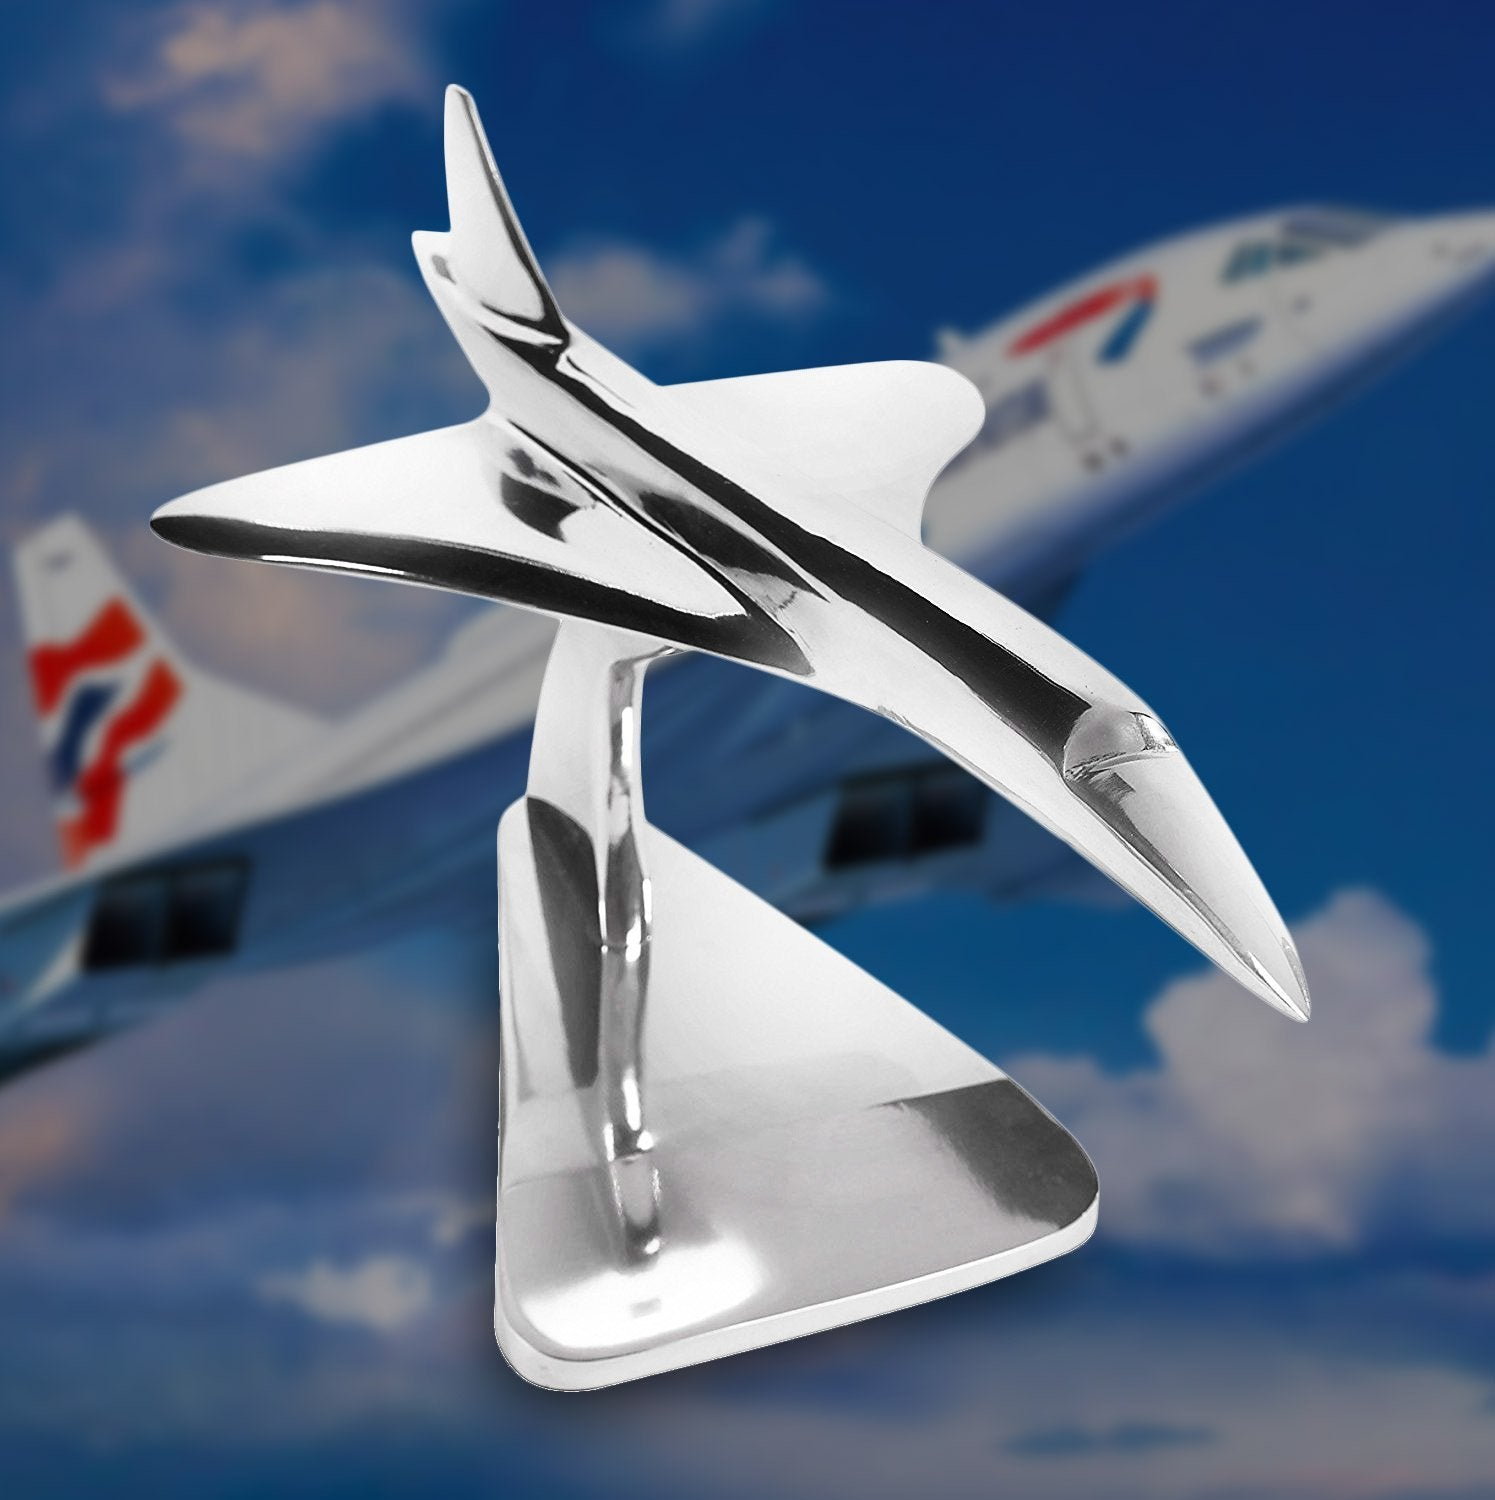 AM Living Executive Stainless Steel Concorde Jet Model 46cms